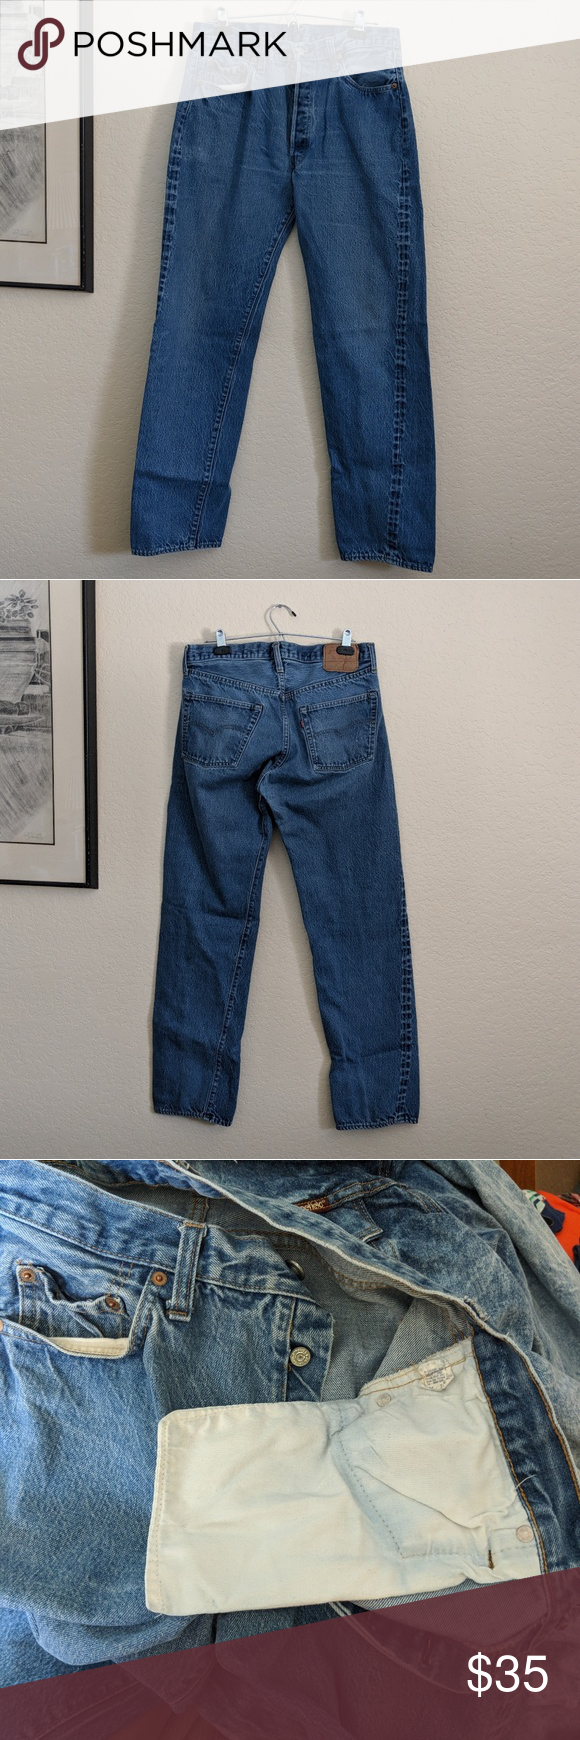 What can you make of old jeans What a delight